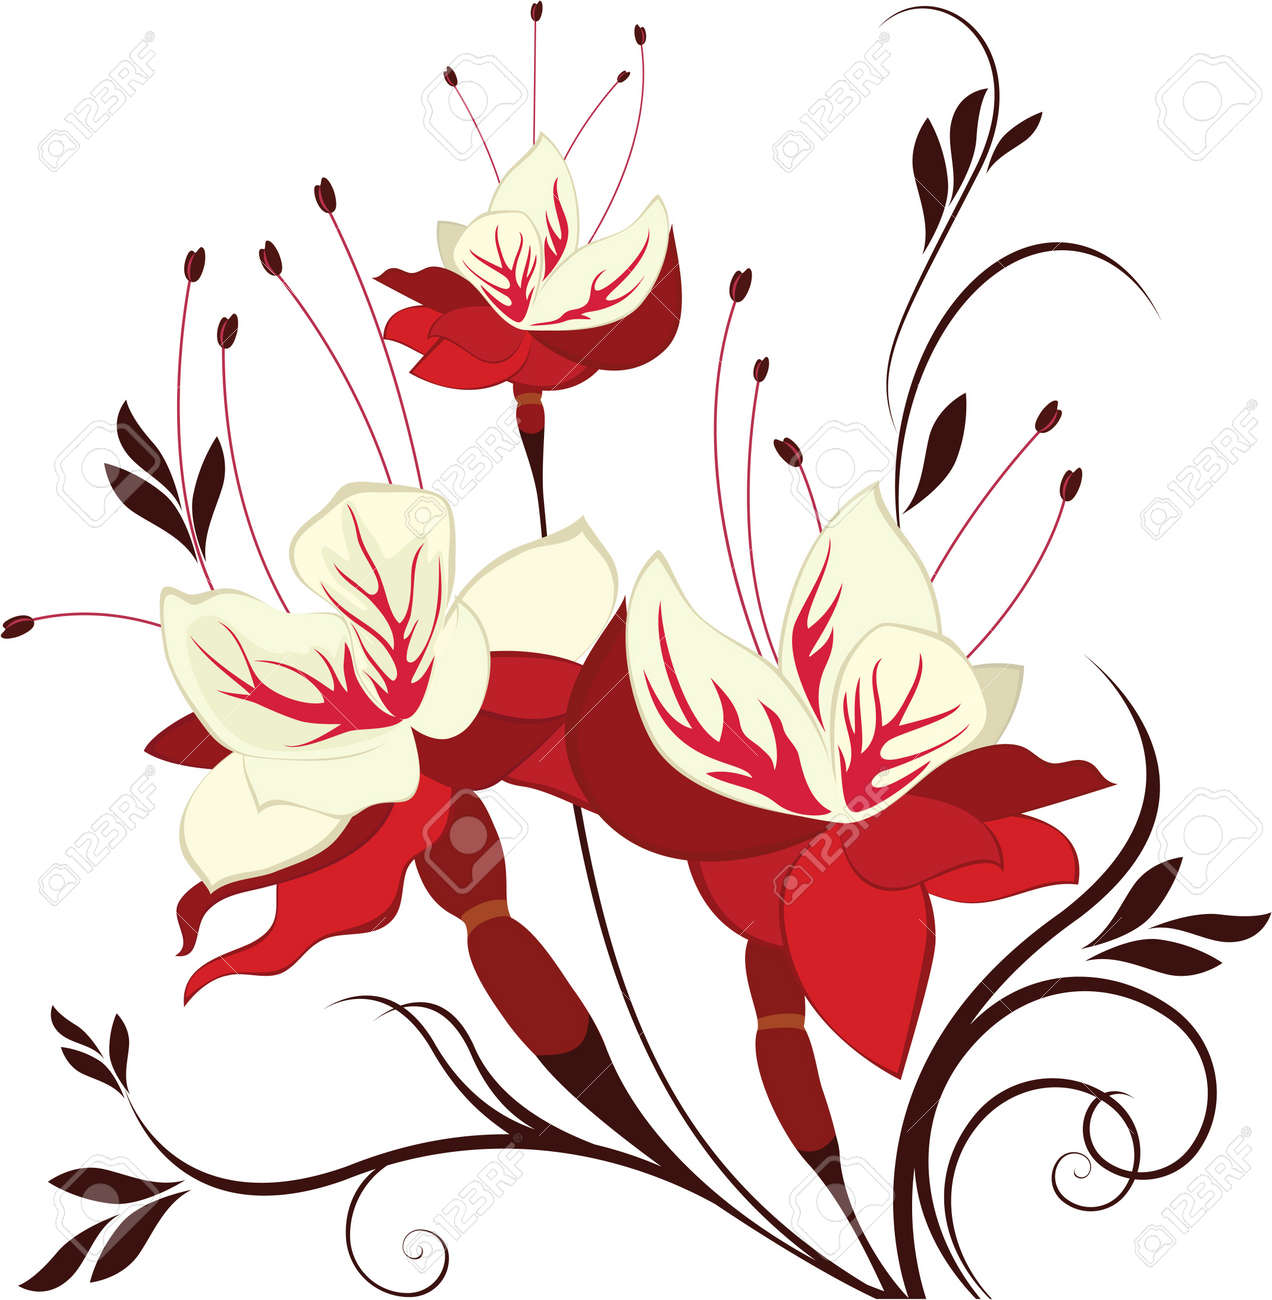 flower fuchsia decorative composition bunch of flowers stock vector 13001892 - Decorative Flowers